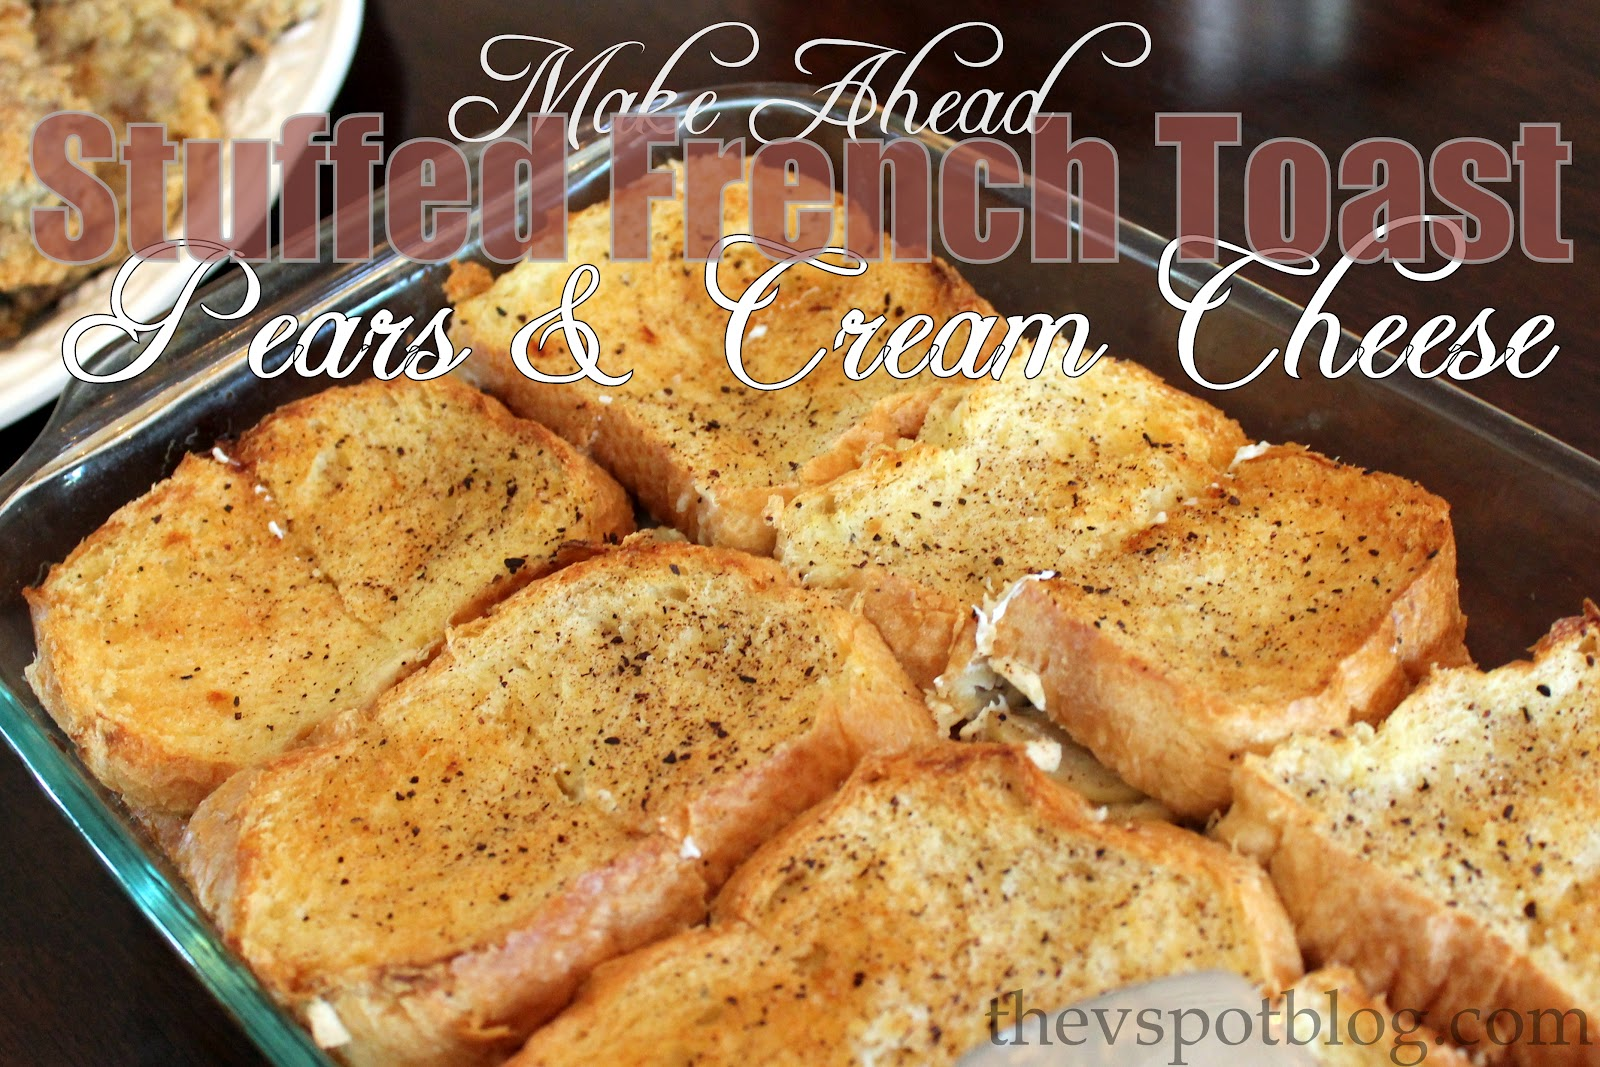 Stuffed French Toast with Pears & Cream Cheese